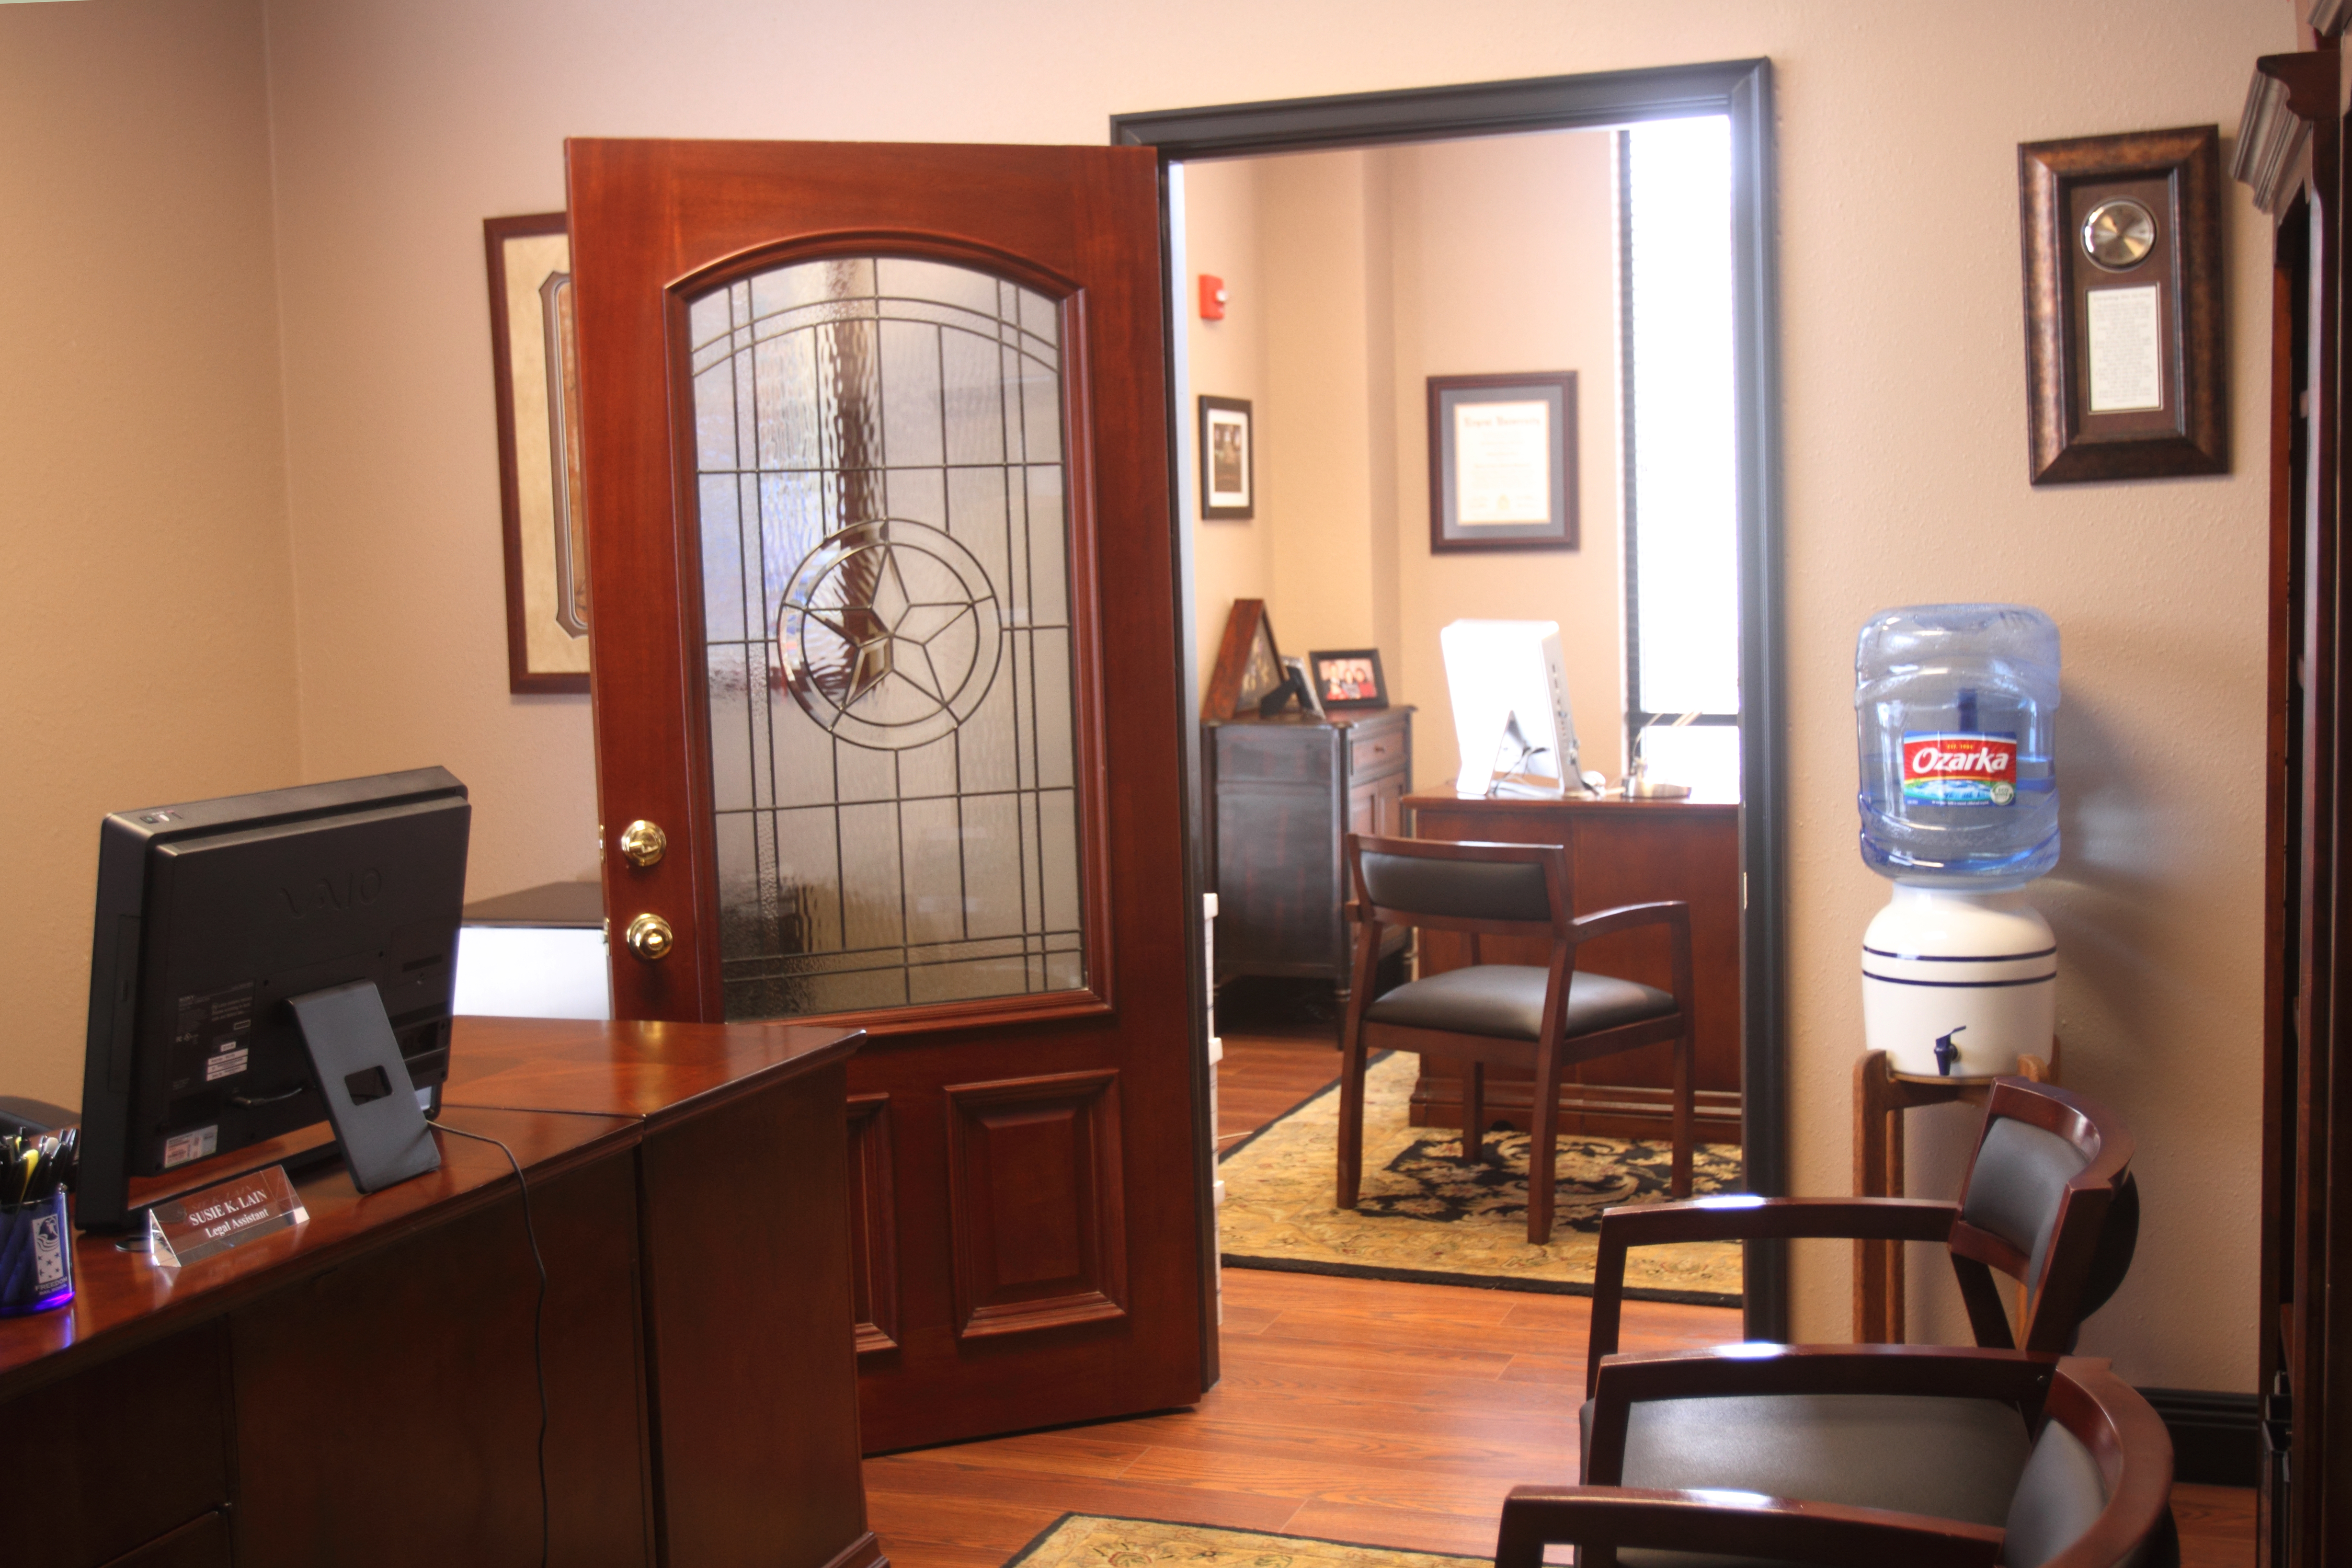 law office interior. Greg Terra Law Office Interior Experienced Attorney In Williamson County, TX